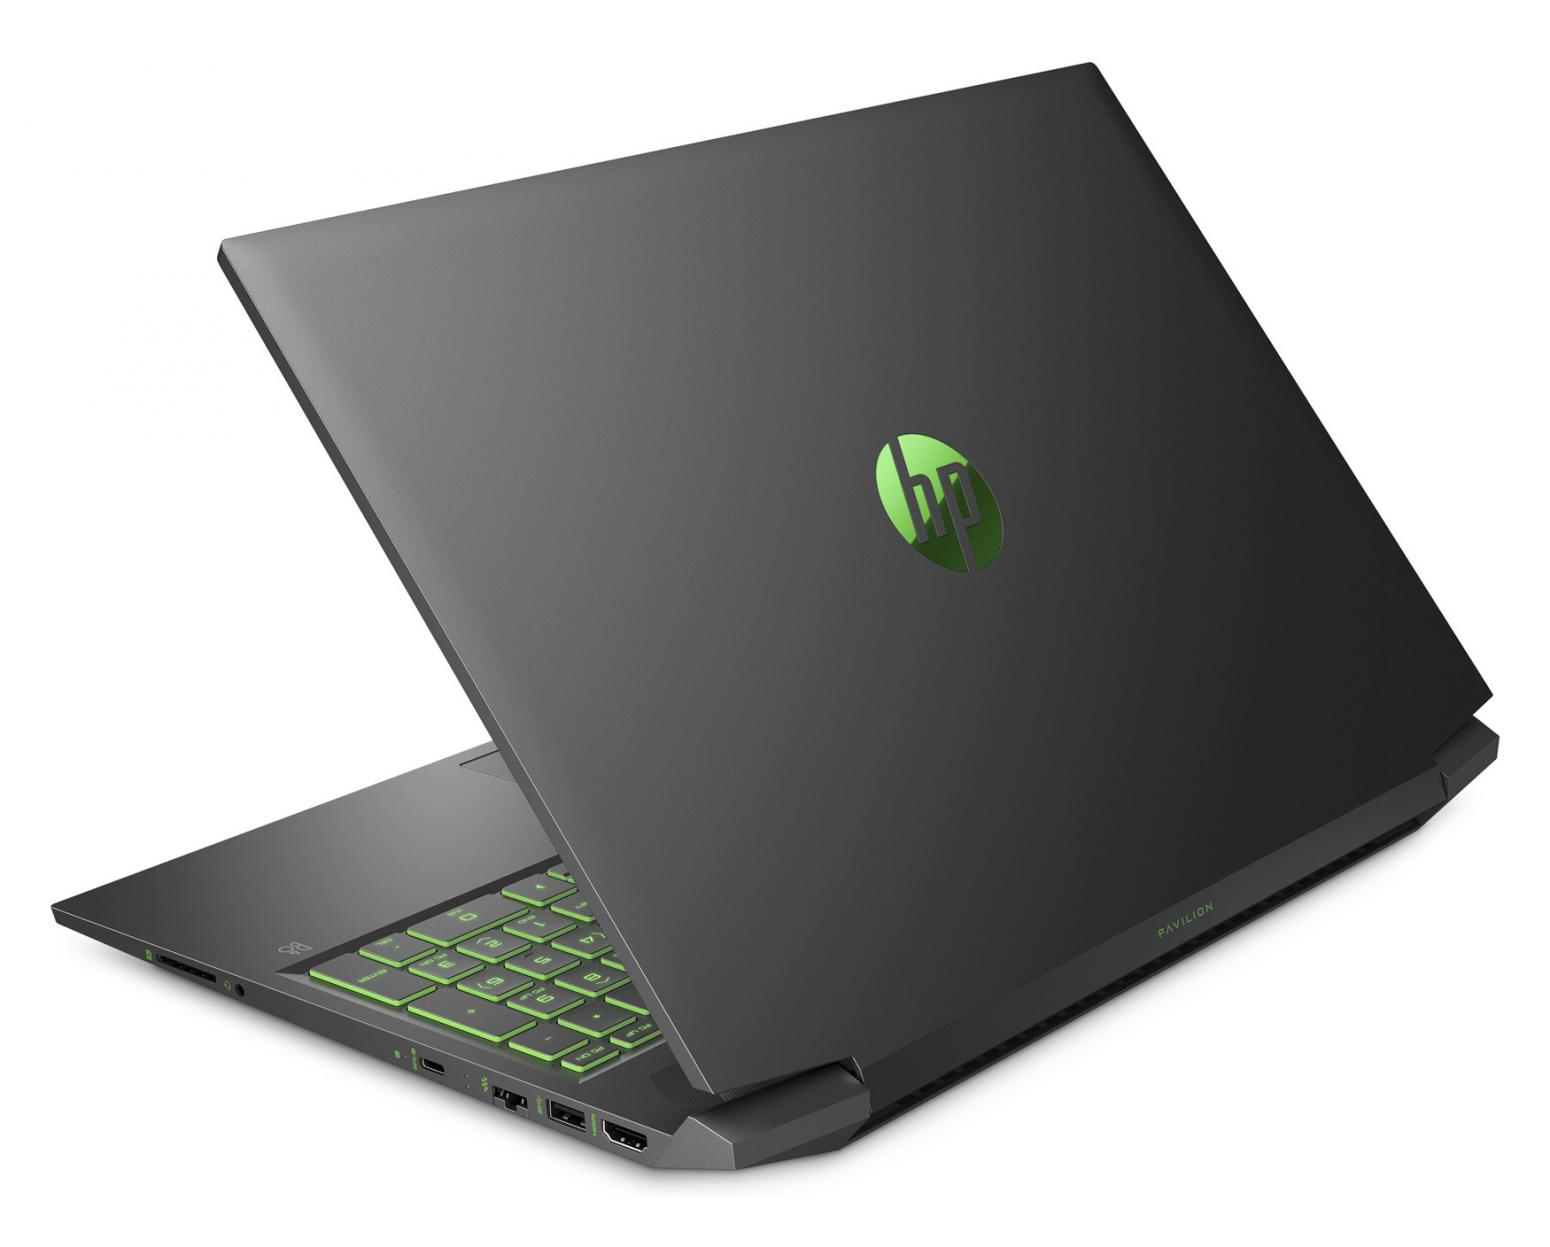 Image du PC portable HP Pavilion Gaming 16-a0031nf Noir/Vert - GTX 1650 Ti, 1.2 To